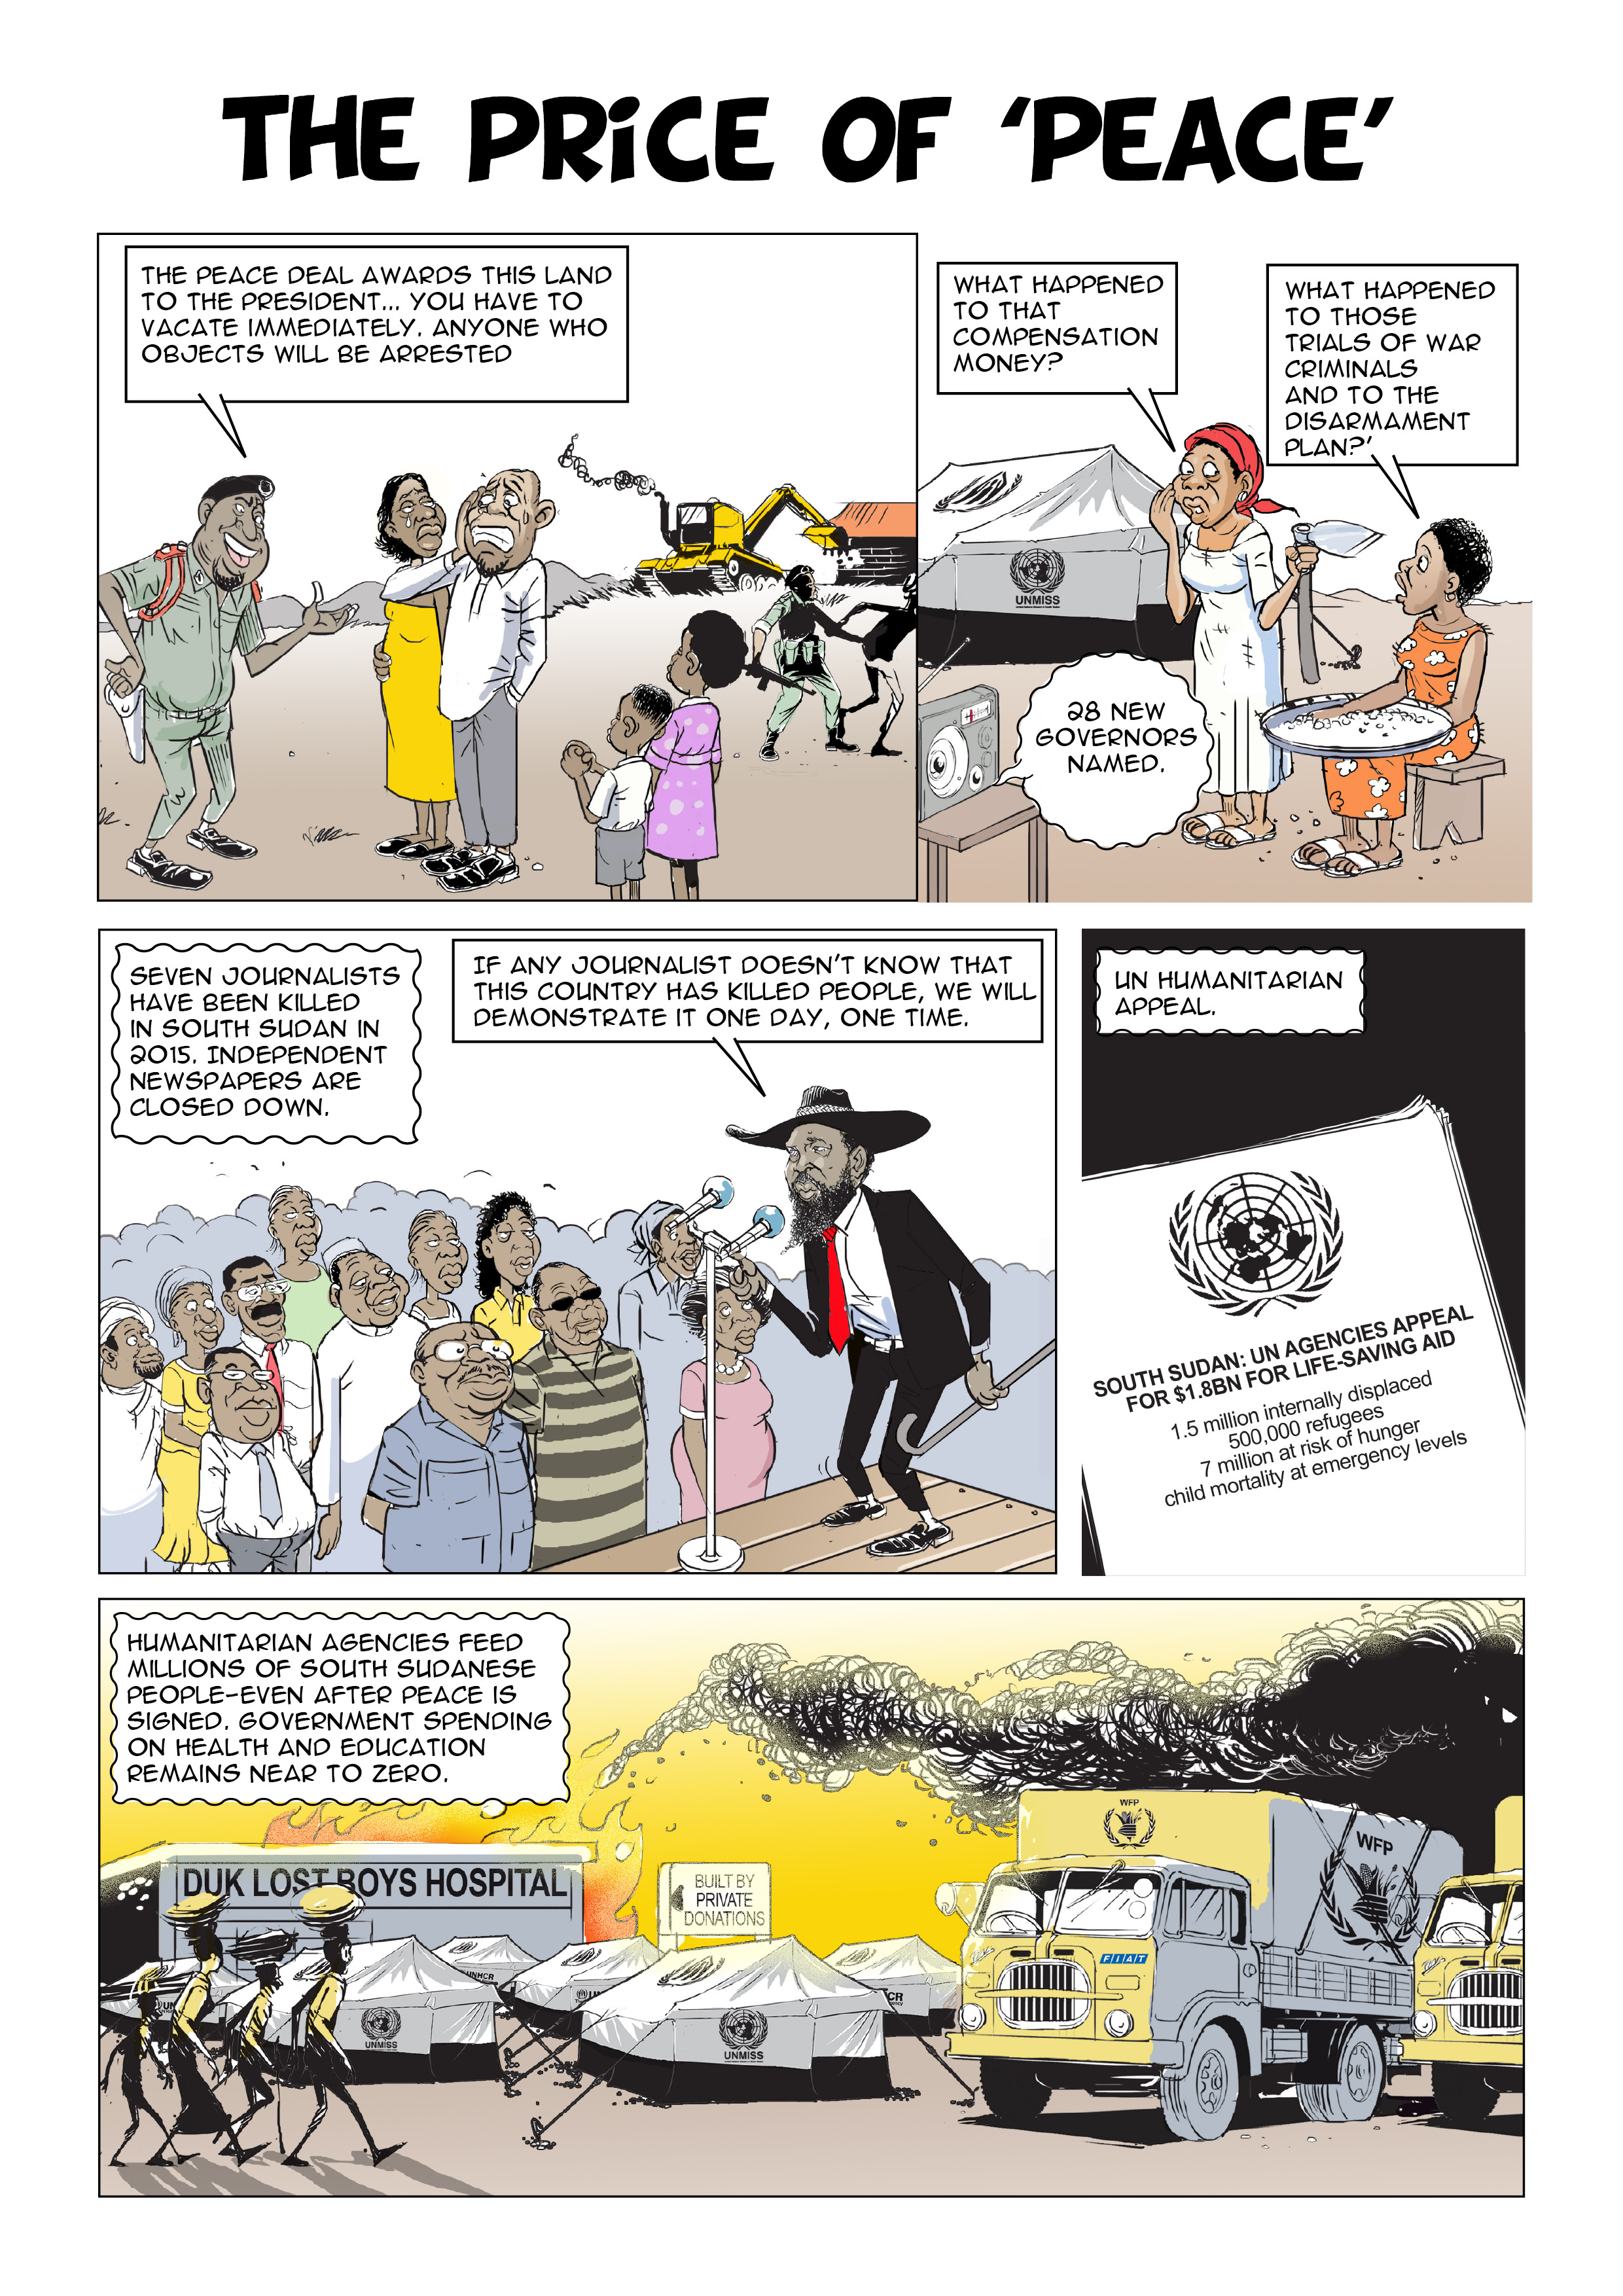 Sudan and South Sudan: From One to Two